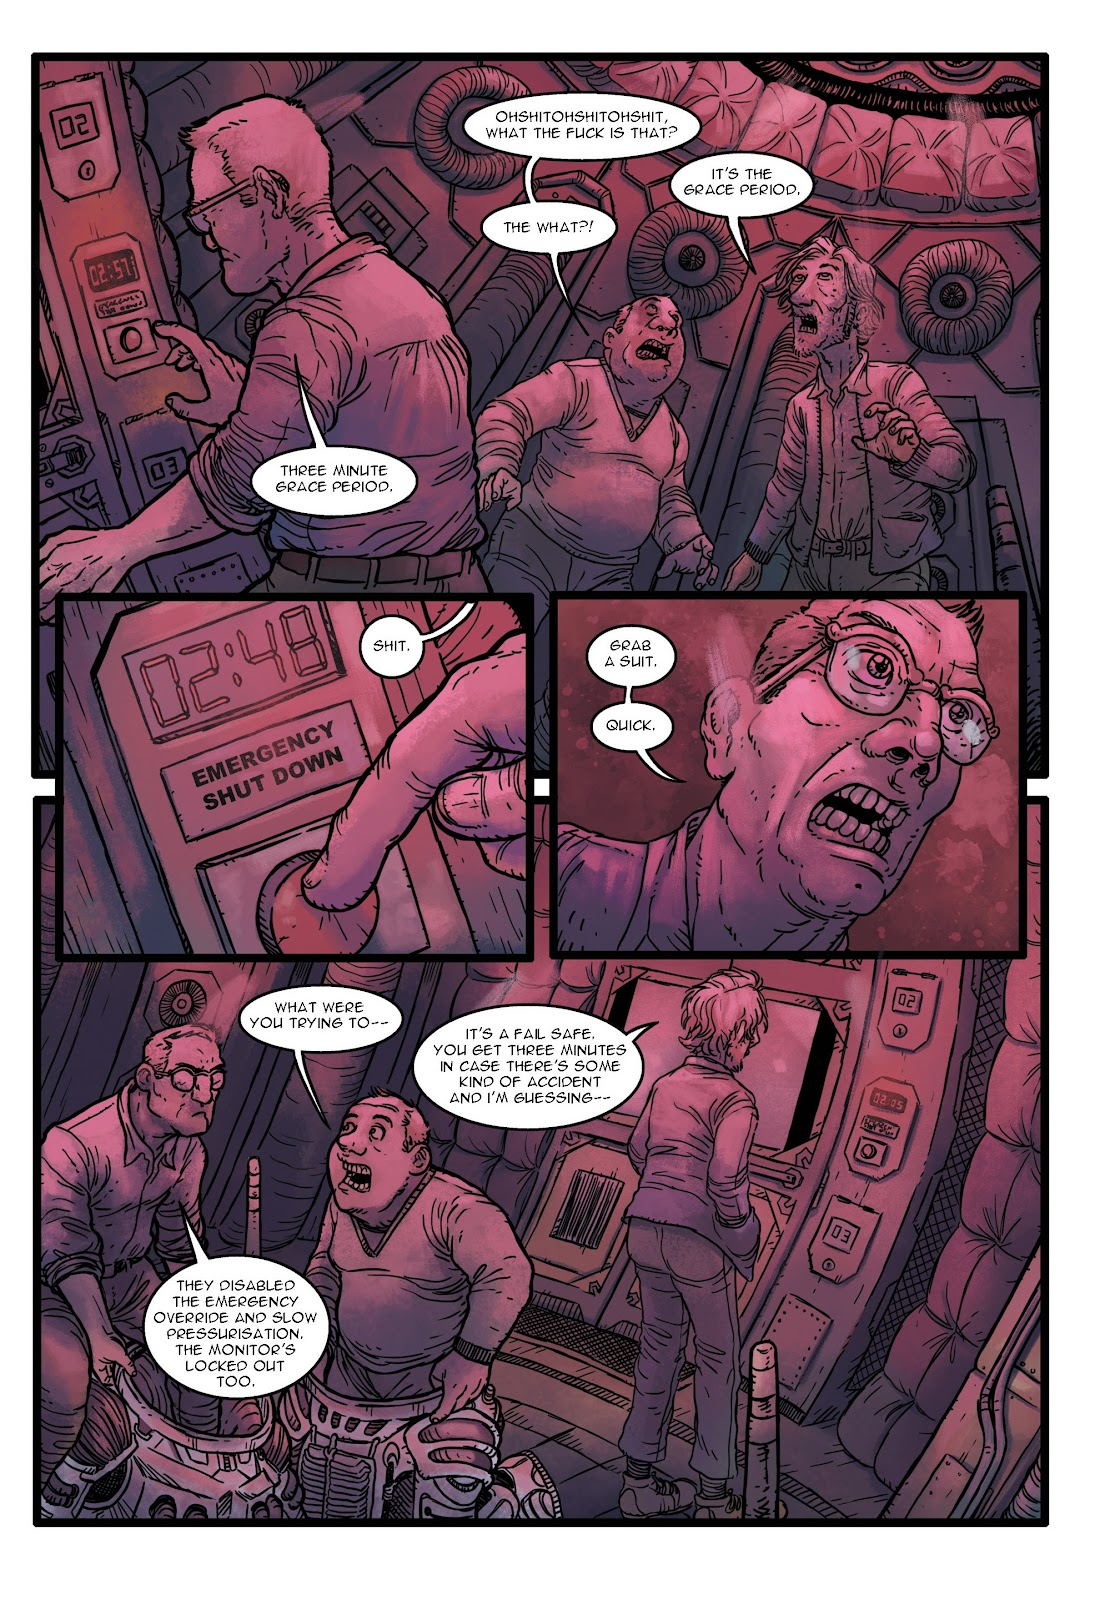 Read online Impossible comic -  Issue # TPB - 37